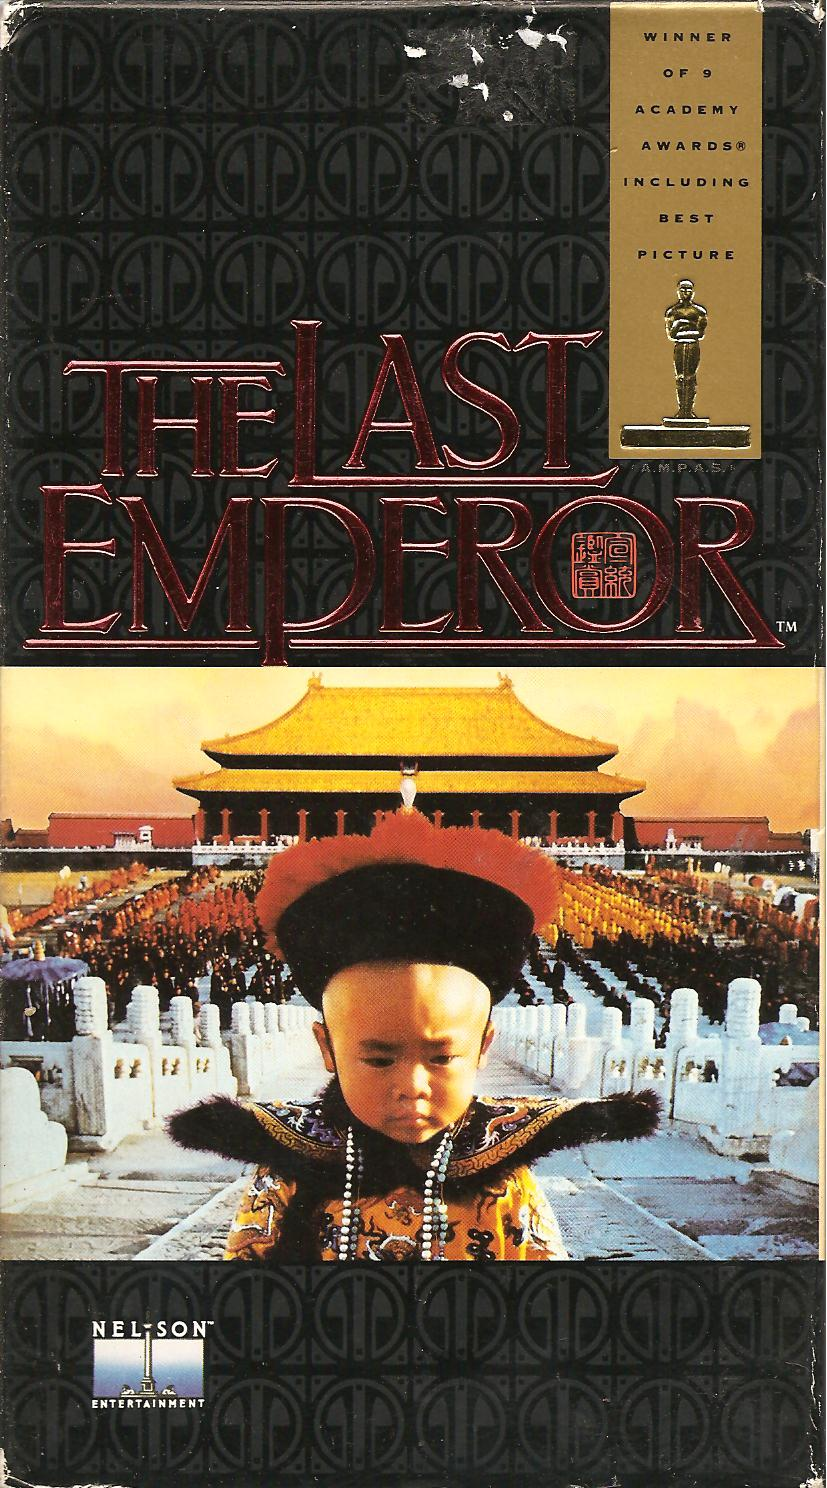 a summary of the emperor s club The emperor's club centers on an inspiring and committed teacher of classical history, mr hundert (kevin kline), who believes that a man's character determines his fate and that it is his job to mold the character of his students an insolent new student named sedgewick bell (emile hirsch) provides hundert's greatest challenge.